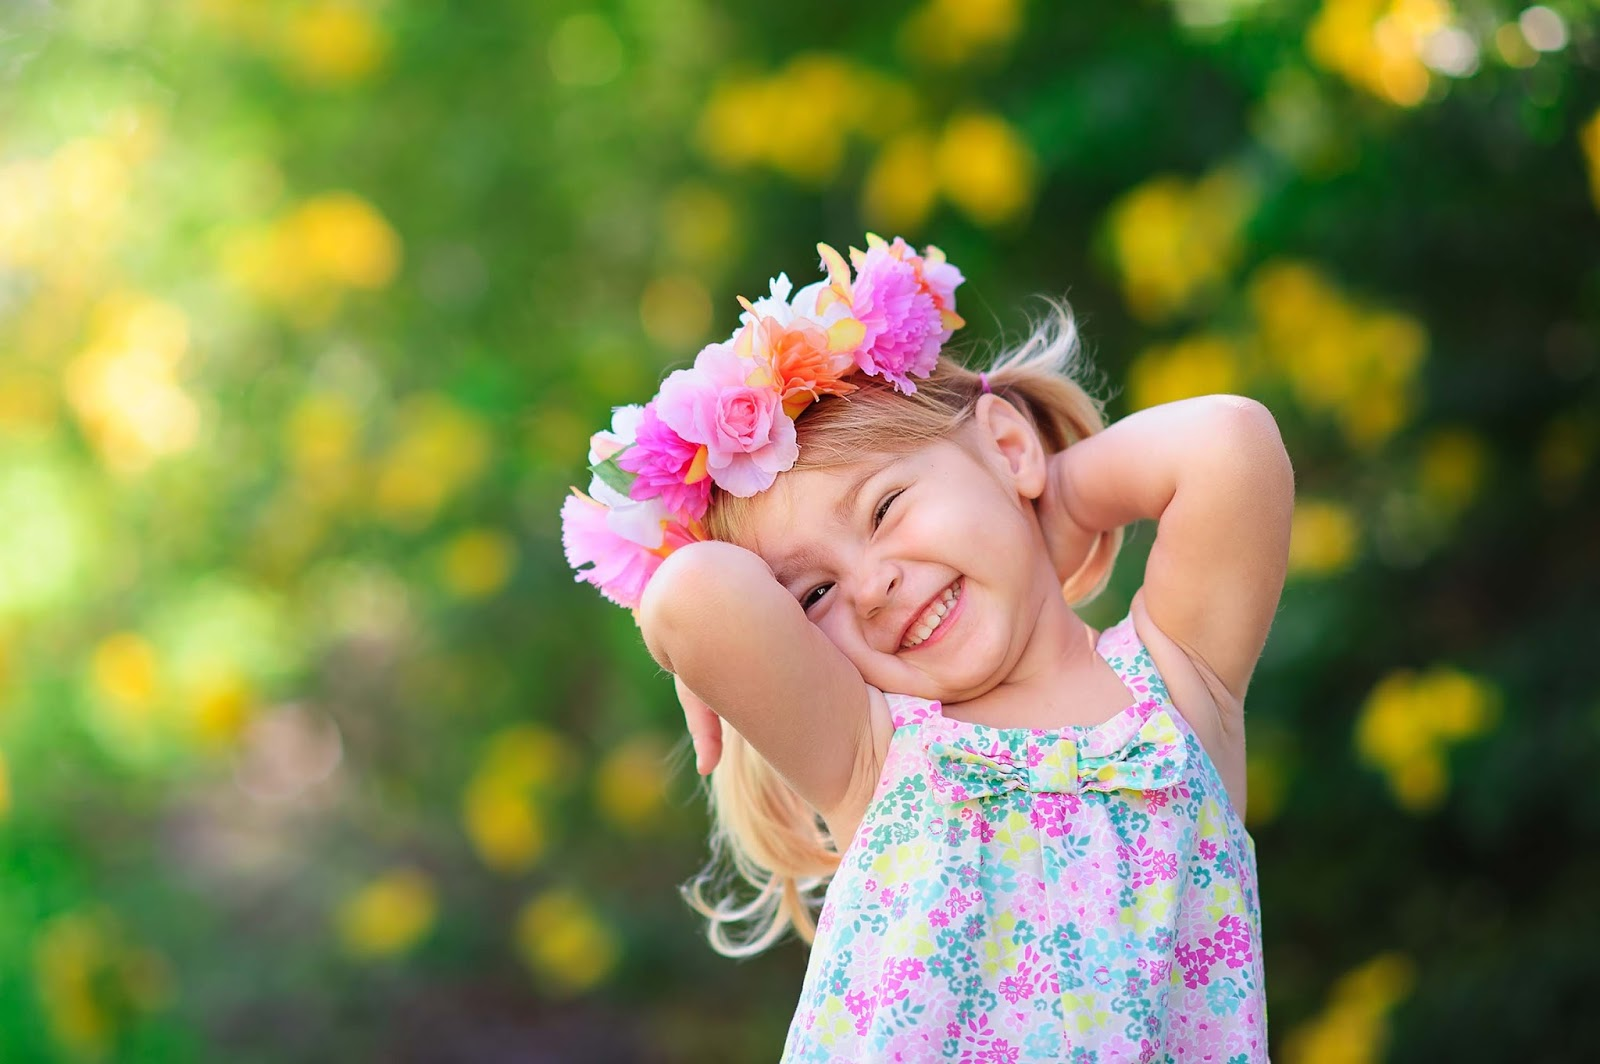 Cute And Lovely Baby Pictures Free Download: Cute And Lovely Baby Pictures Free Download